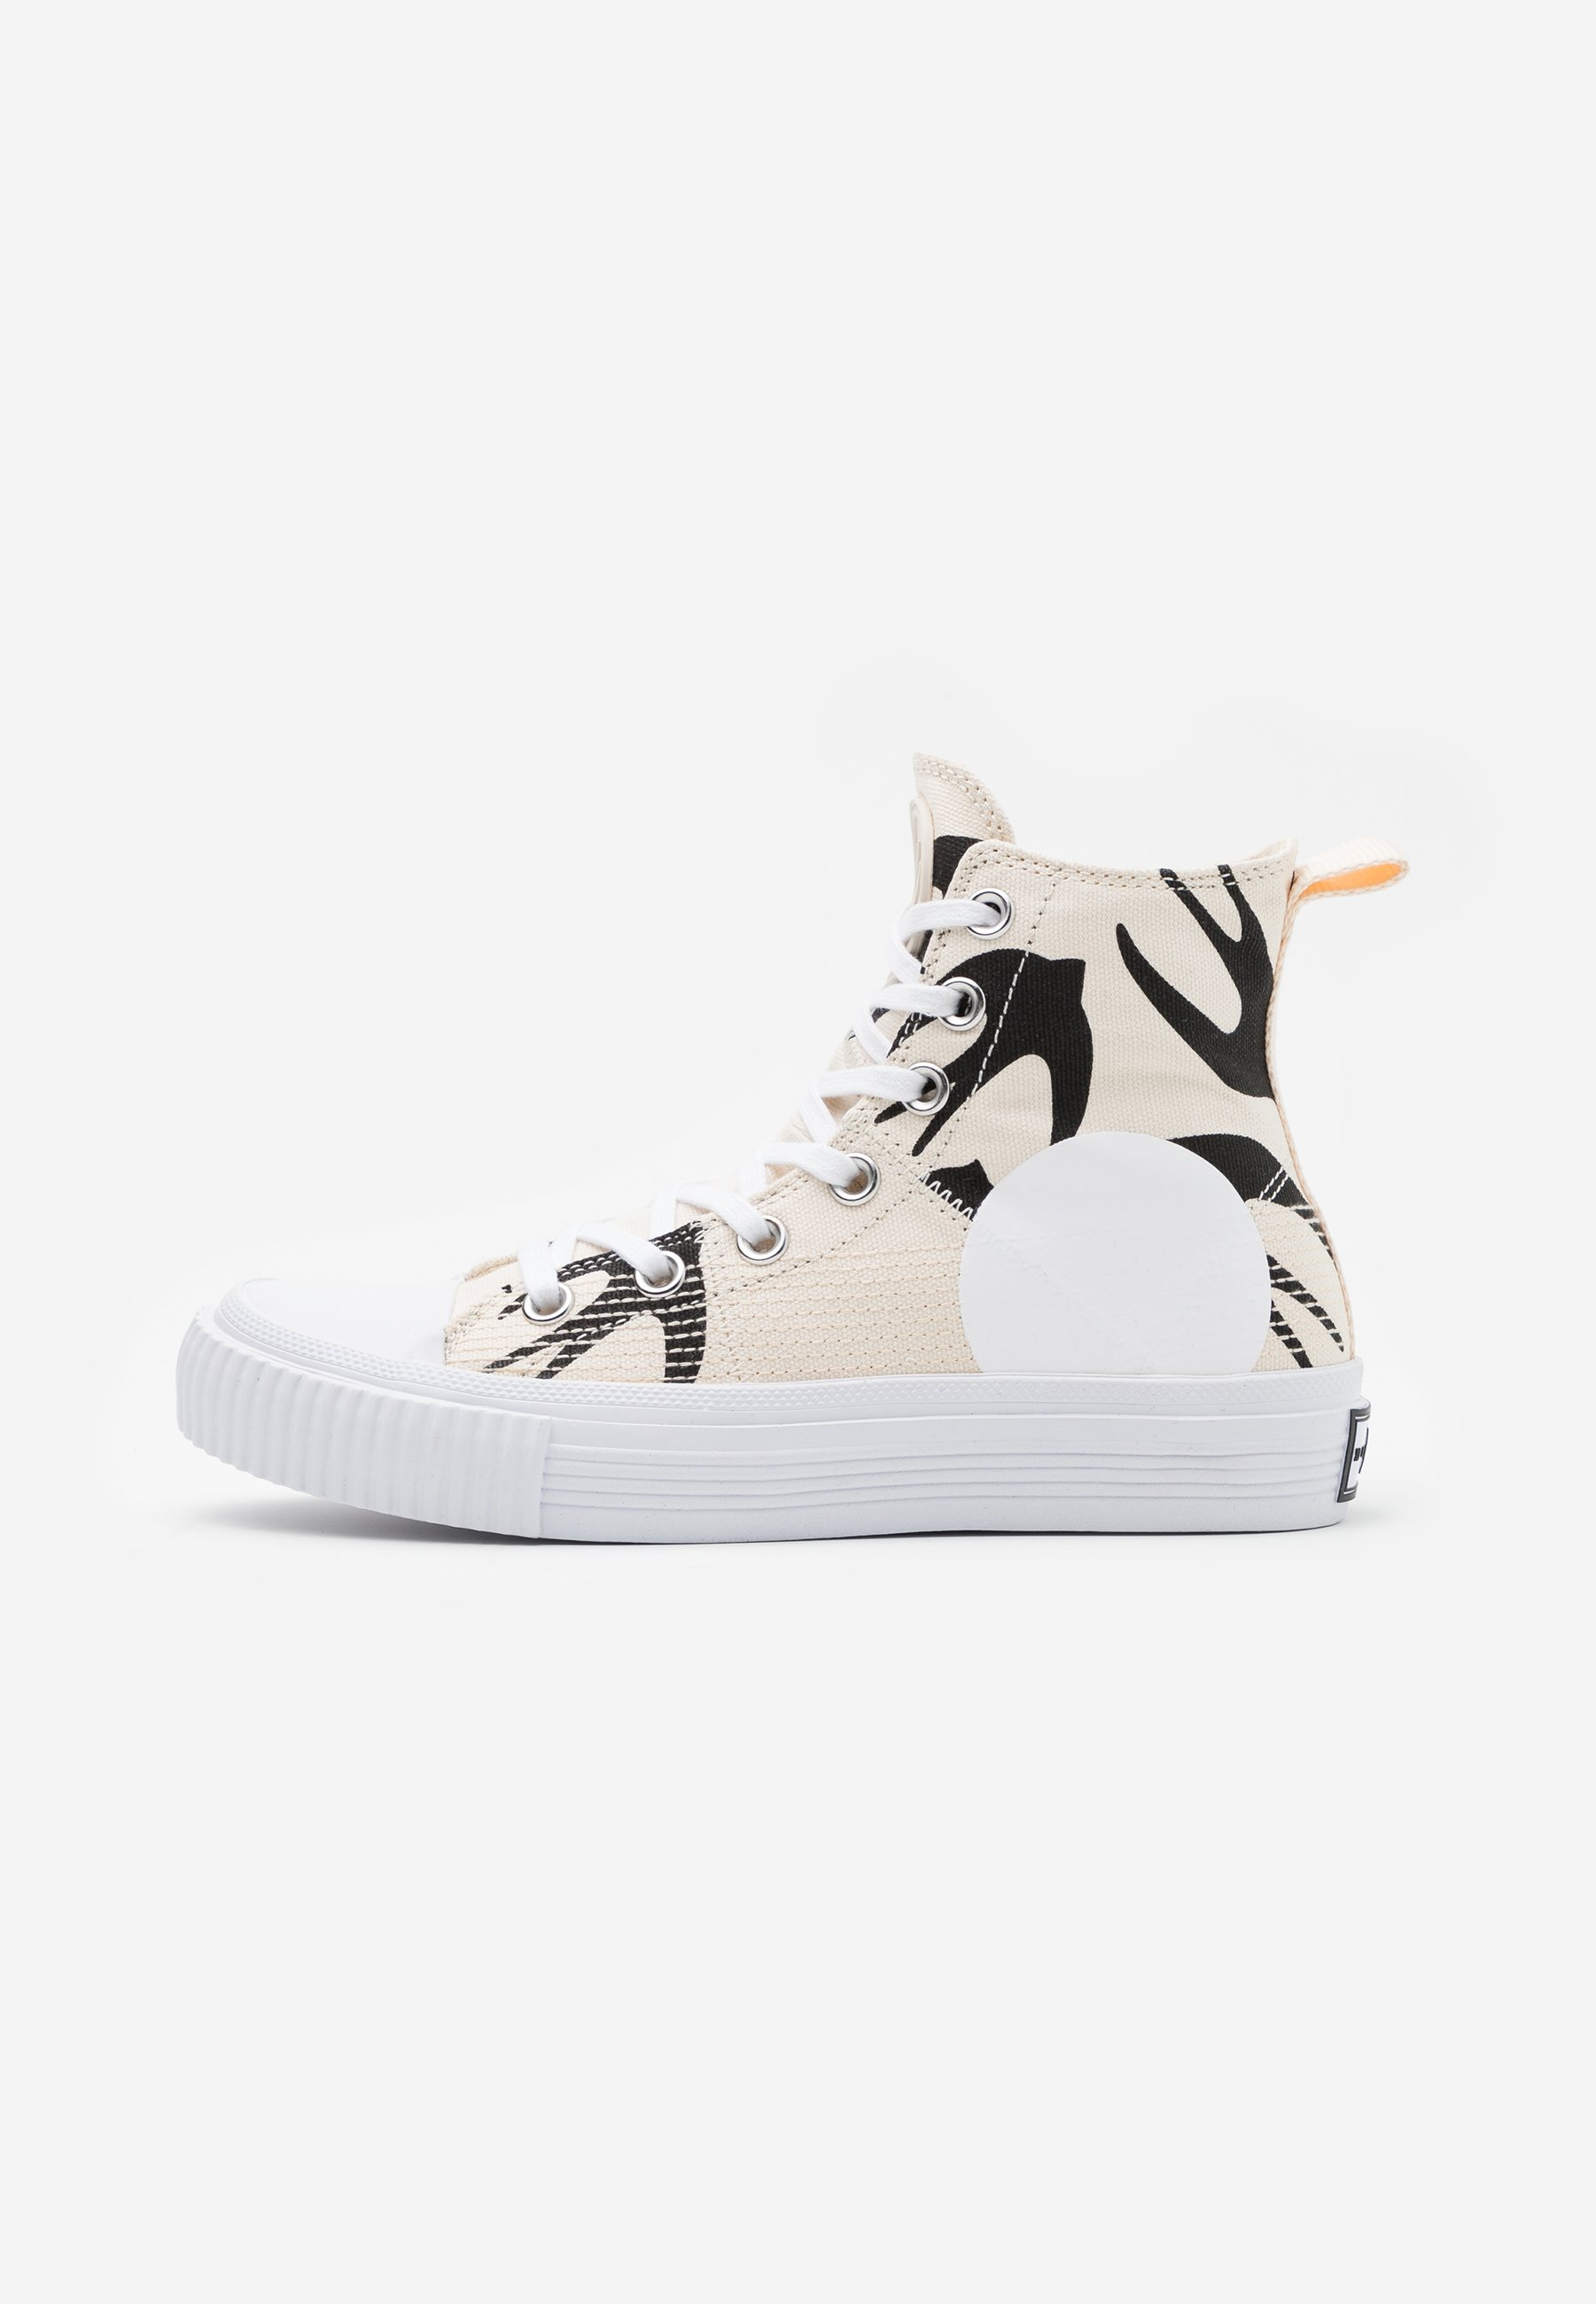 Mcq Alexander Mcqueen Swallow Hi Cut Up High Top Trainers Oyster Black Off White Zalando Ie